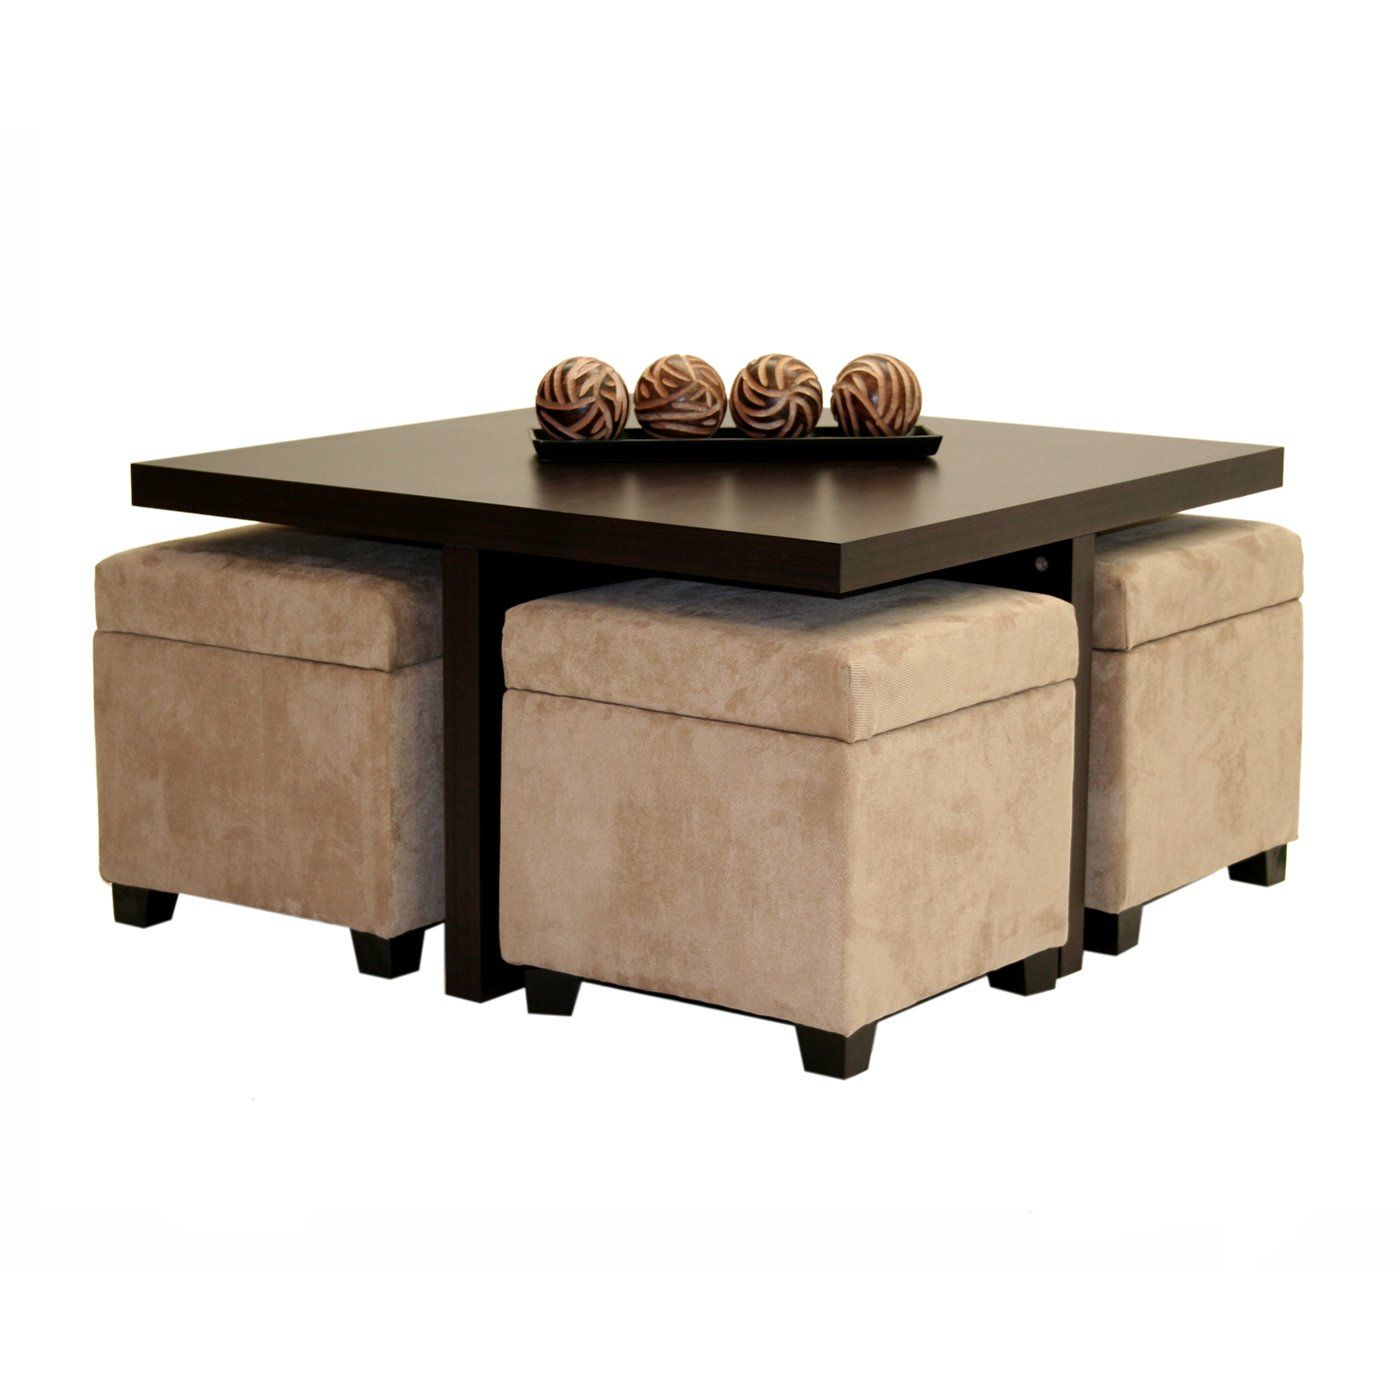 Great for areas like a LoftCondo or small space where seating is